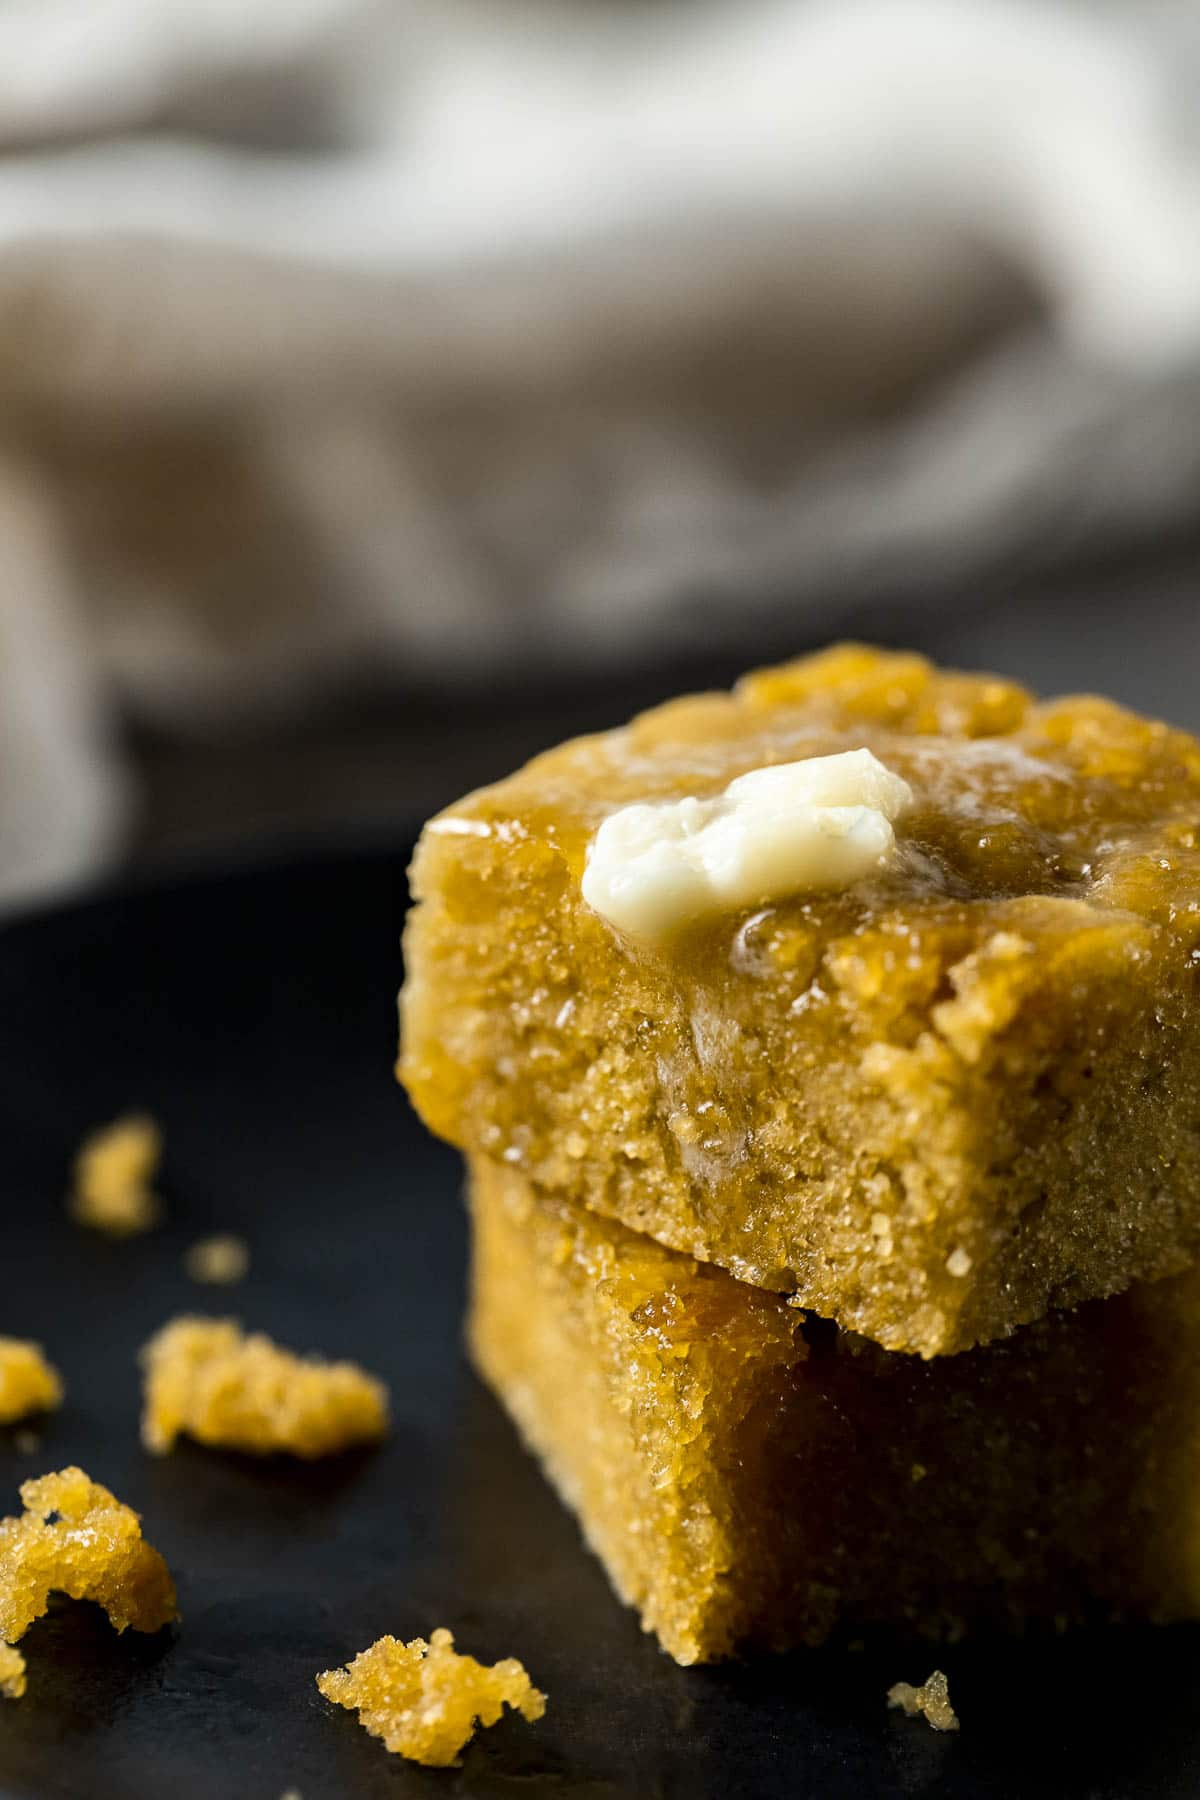 Two square pieces of cornbread with butter on top.